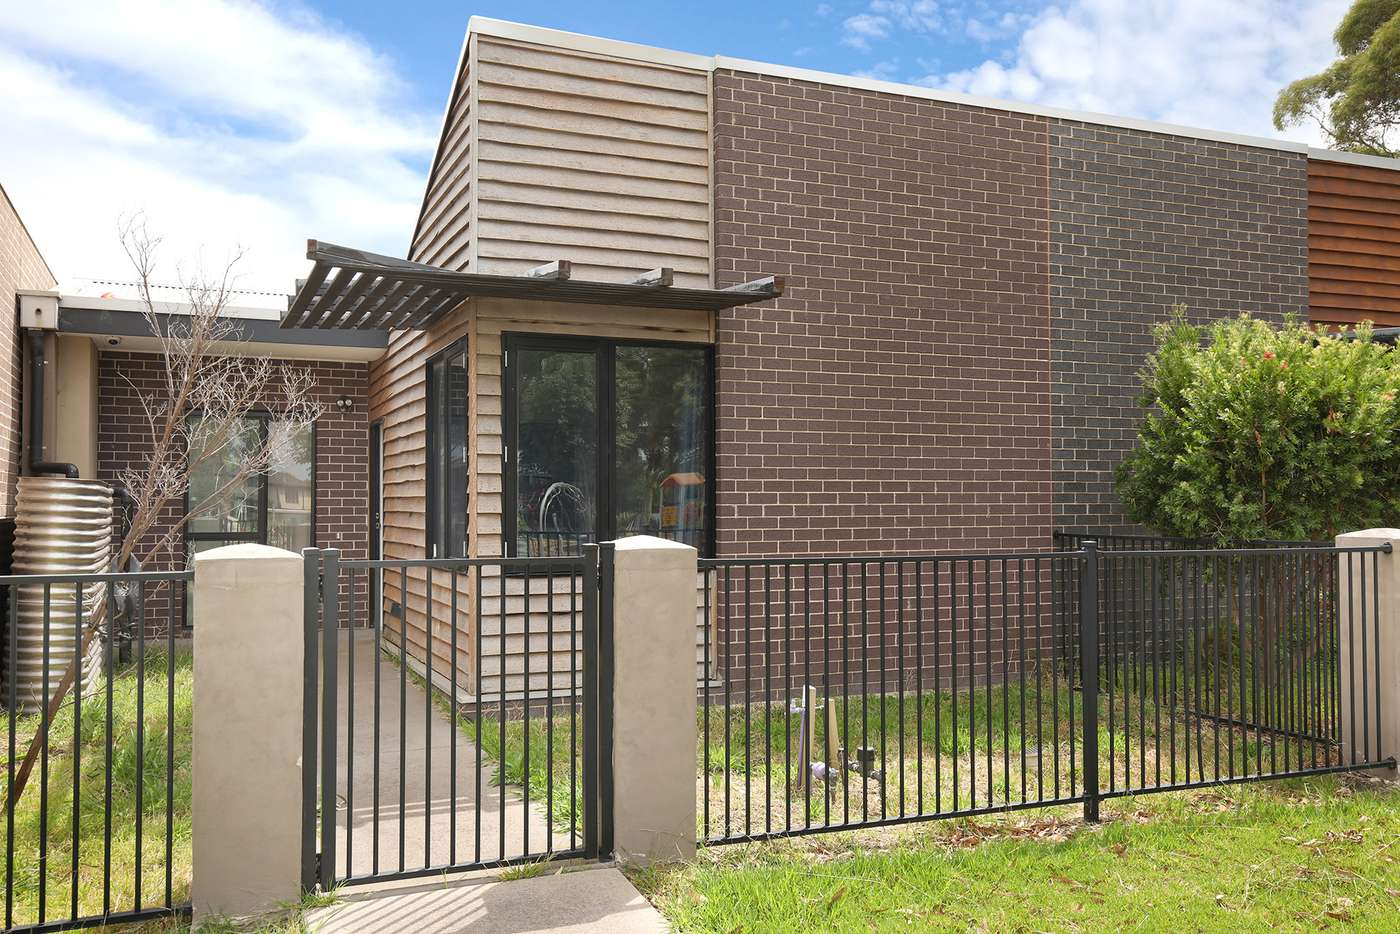 Main view of Homely townhouse listing, 3 Landsby Lane, Dandenong VIC 3175